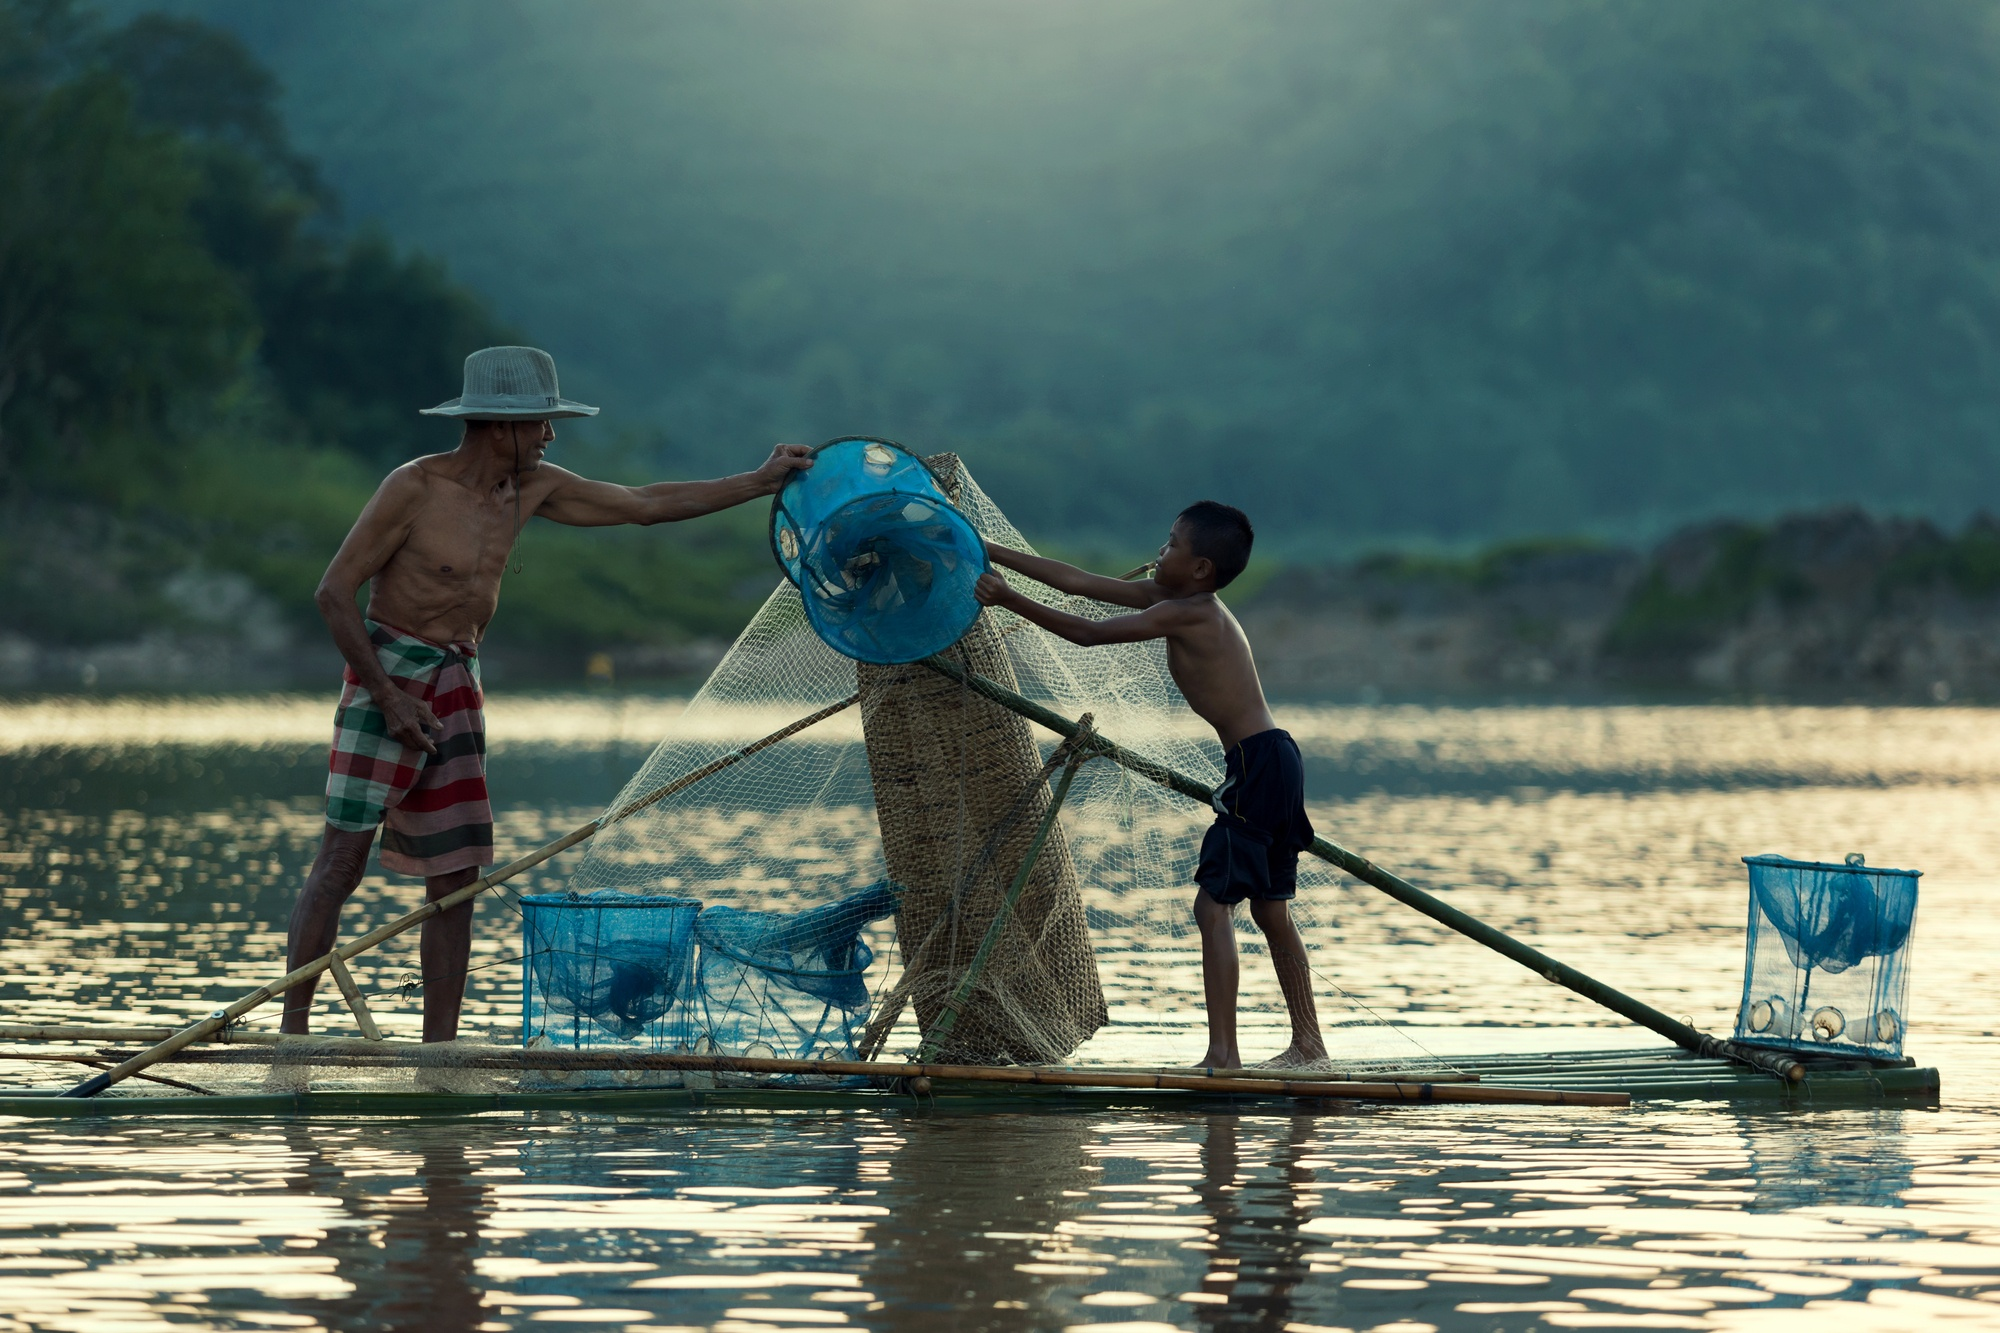 Fishing is an important part of life in Laos